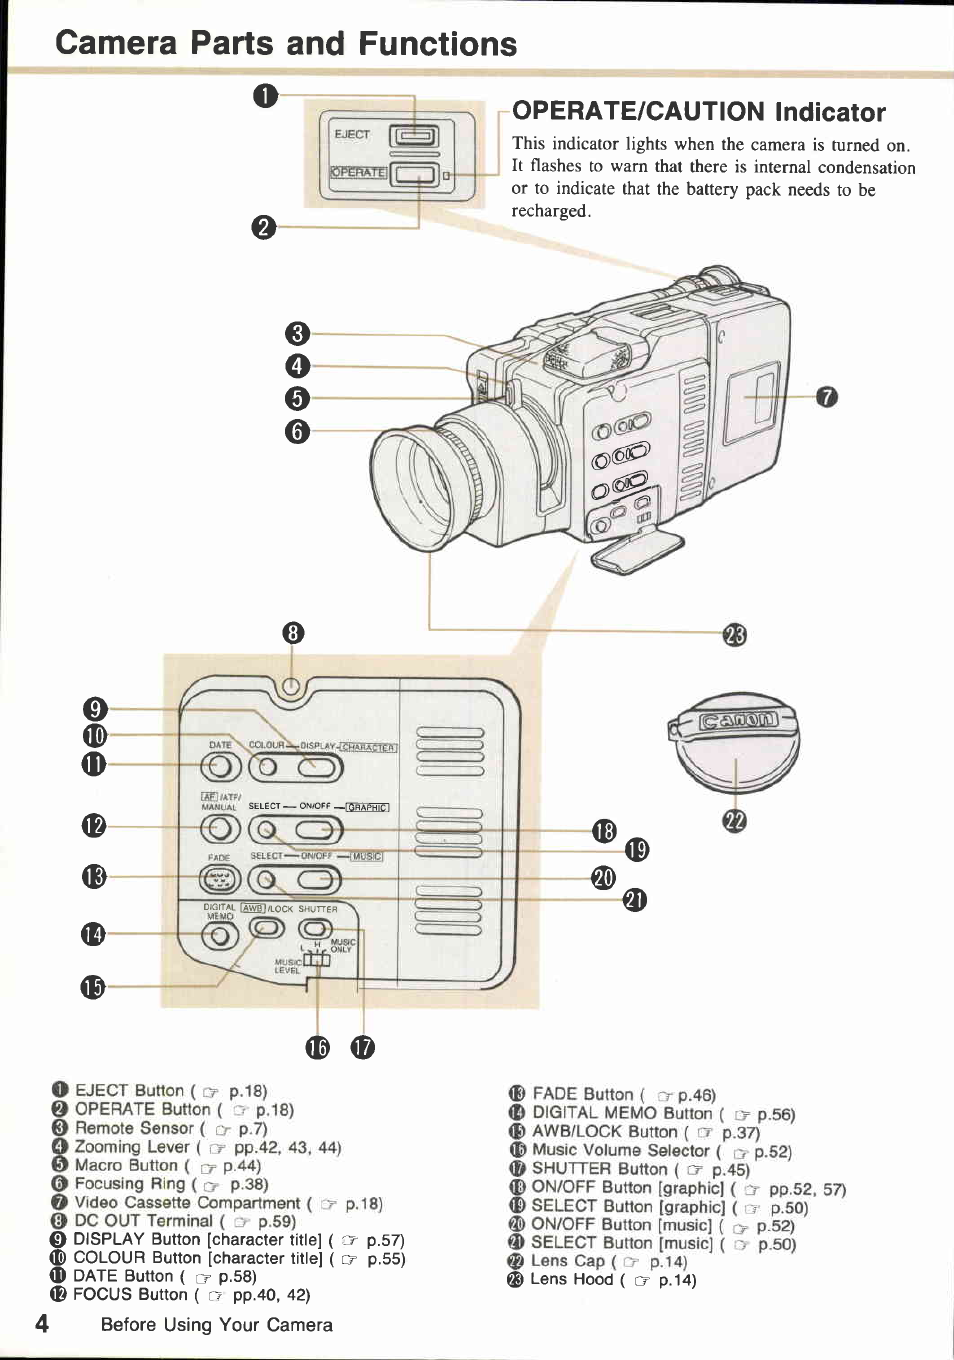 ... repair manual parts catalog canon products Array - camera parts and  functions operate caution indicator canon e850 rh manualsdir com